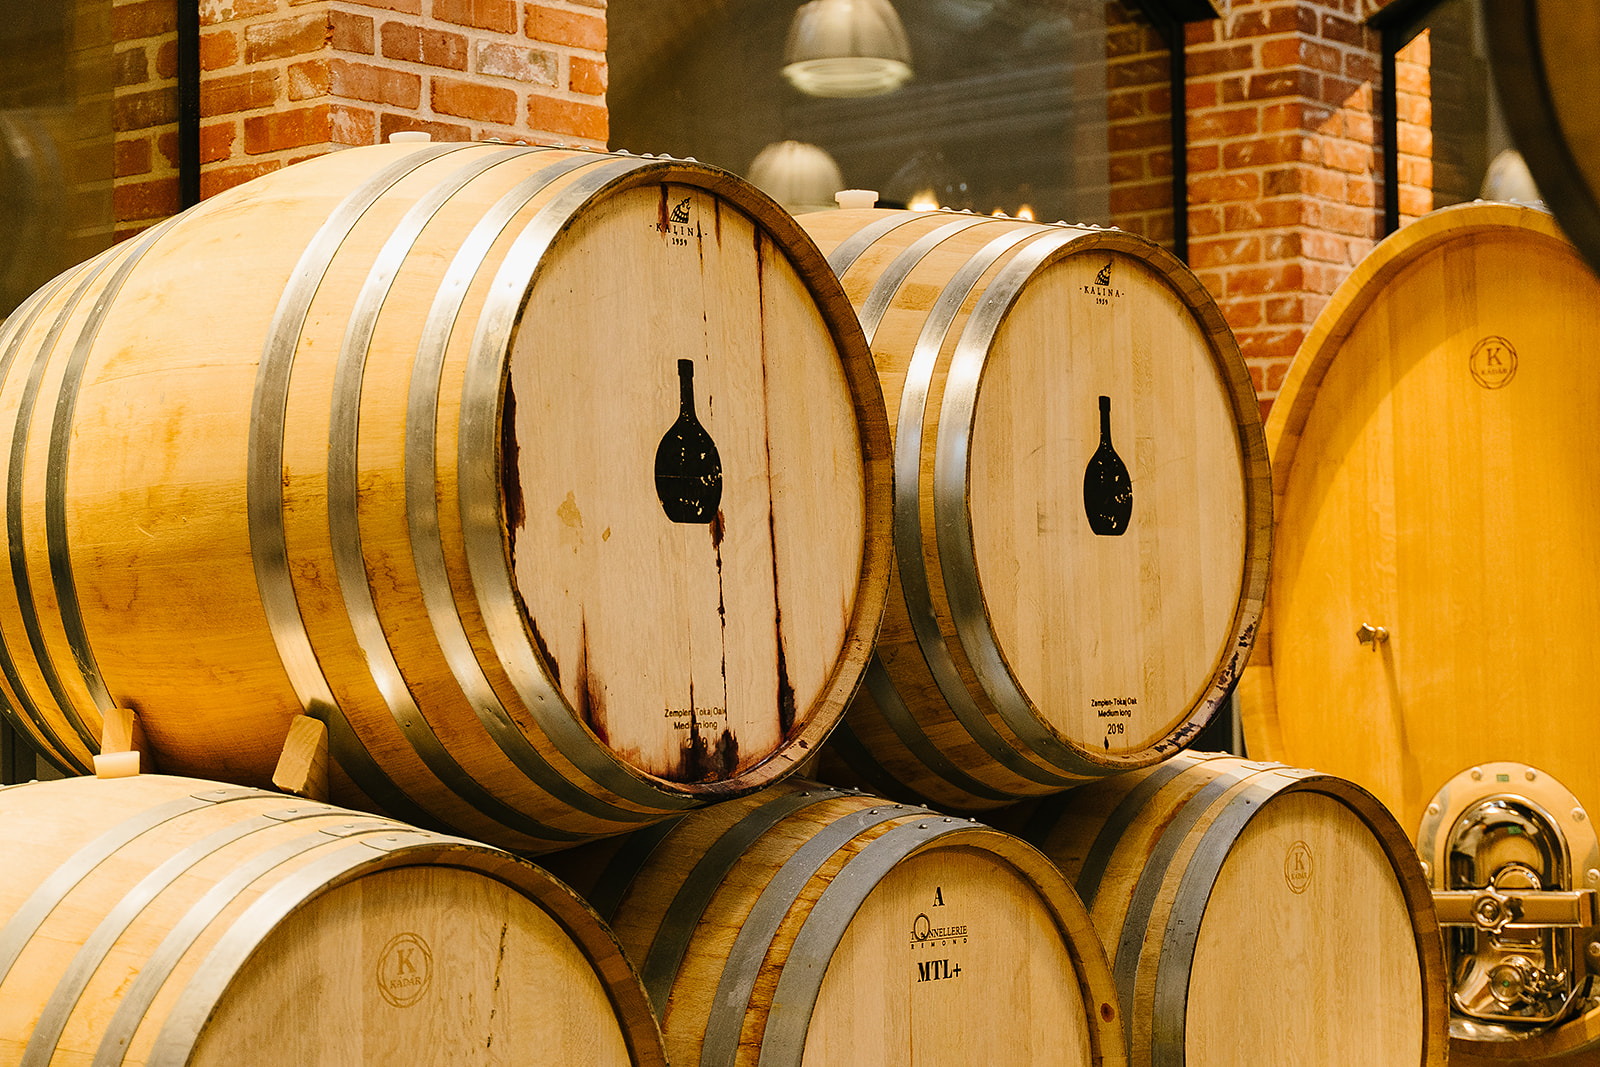 Large wine barrels stacked on top of each other with the Carboy Winery logo printed on them.